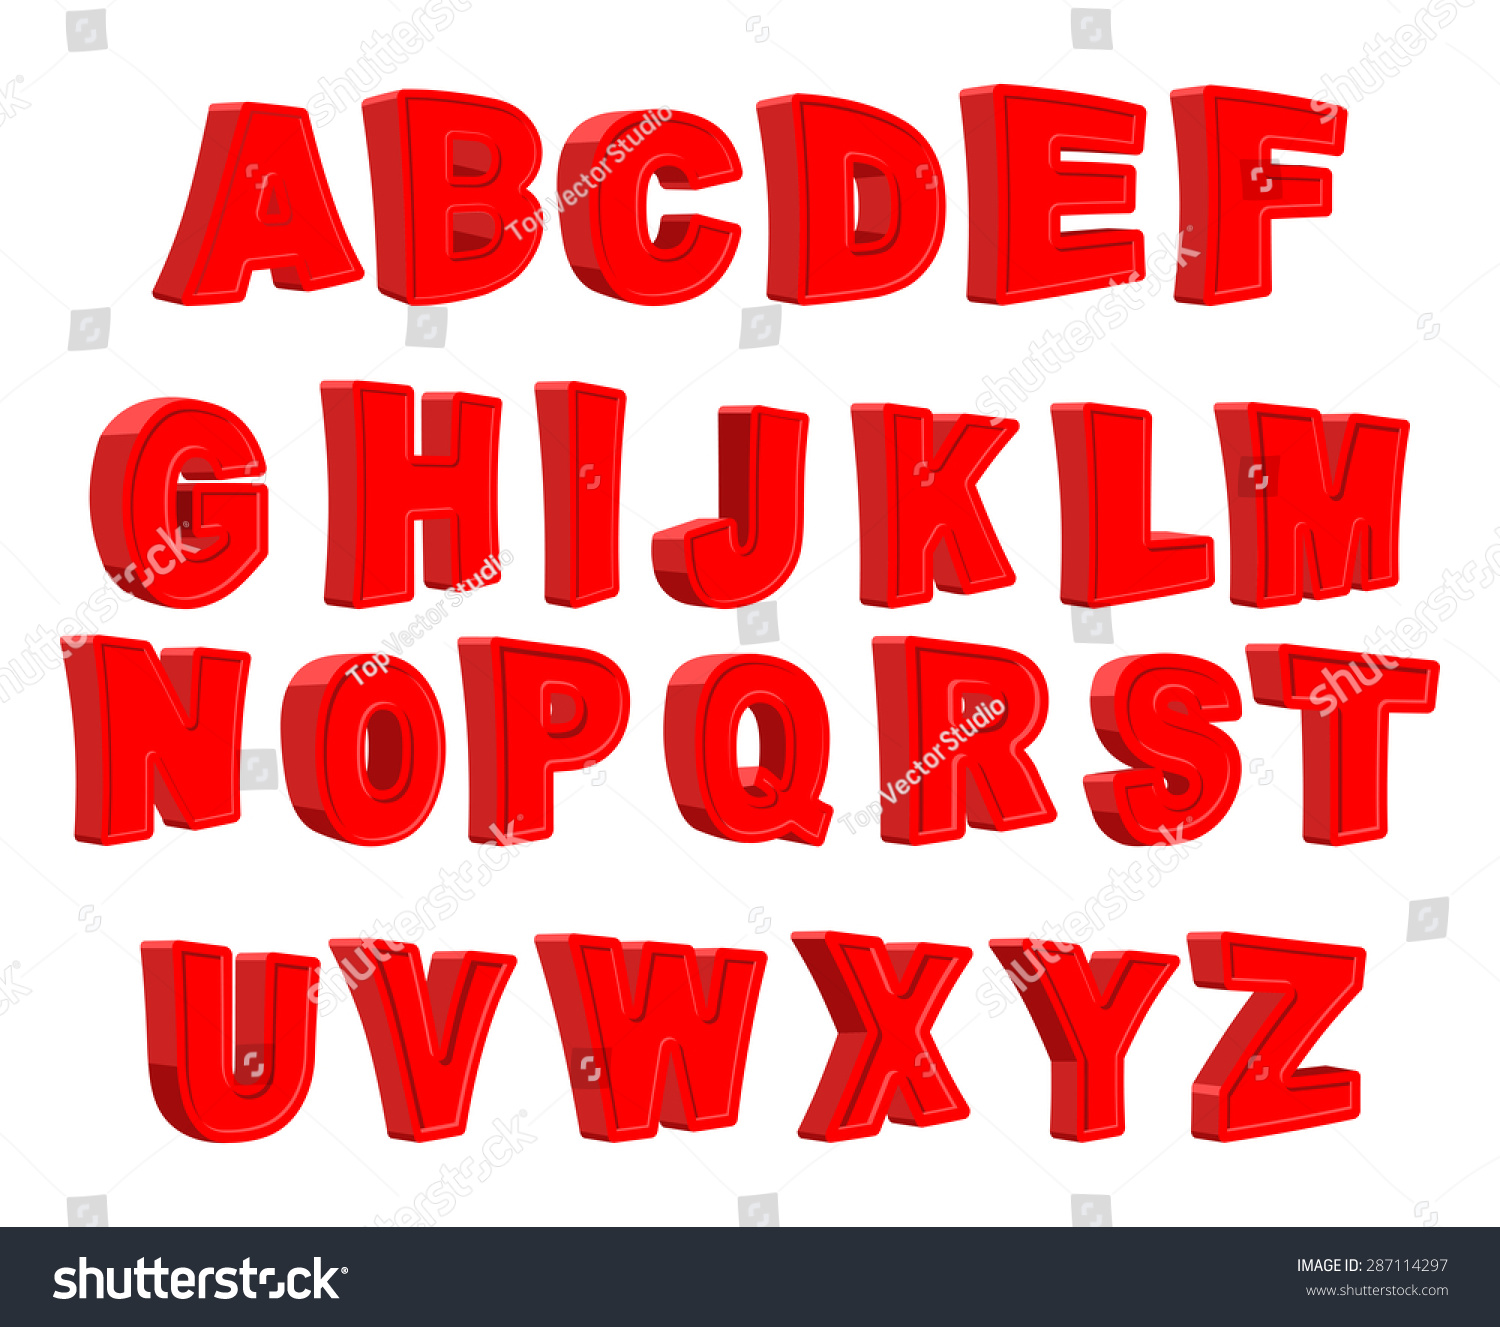 hight resolution of toy letter red alphabet cartoon children abc vector illustration